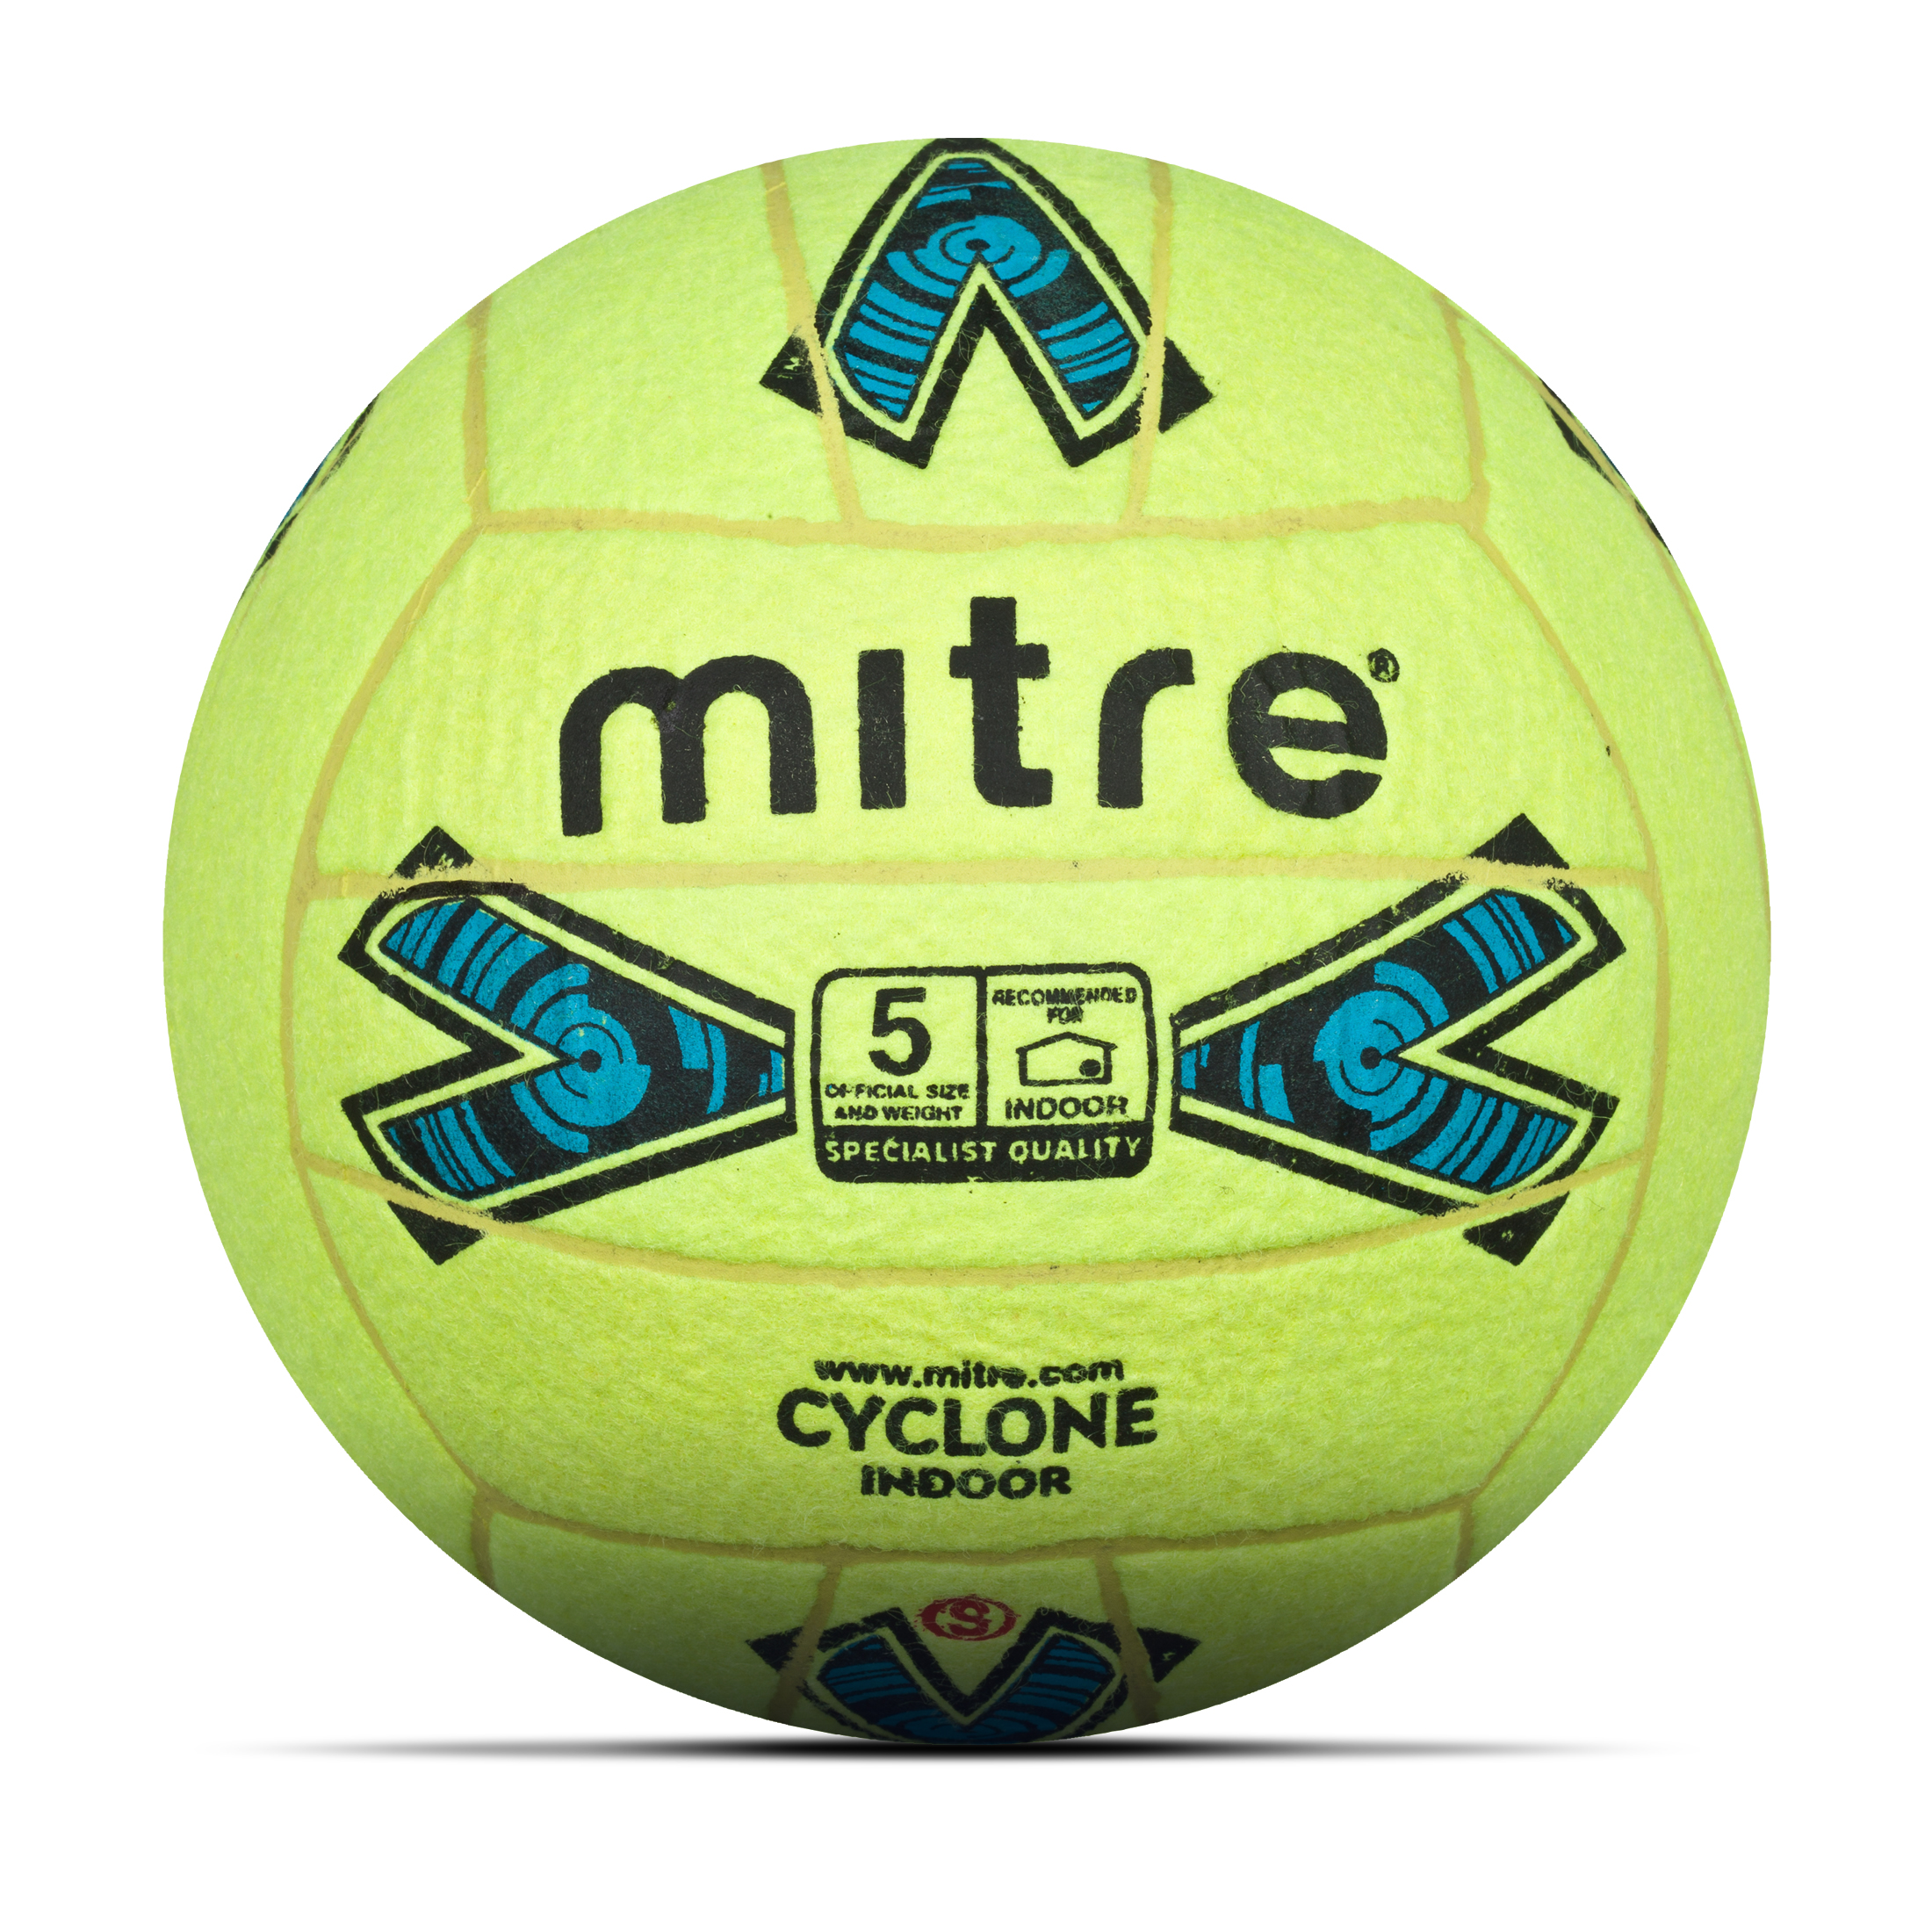 Mitre Cyclone Indoor 18P Football - Yellow